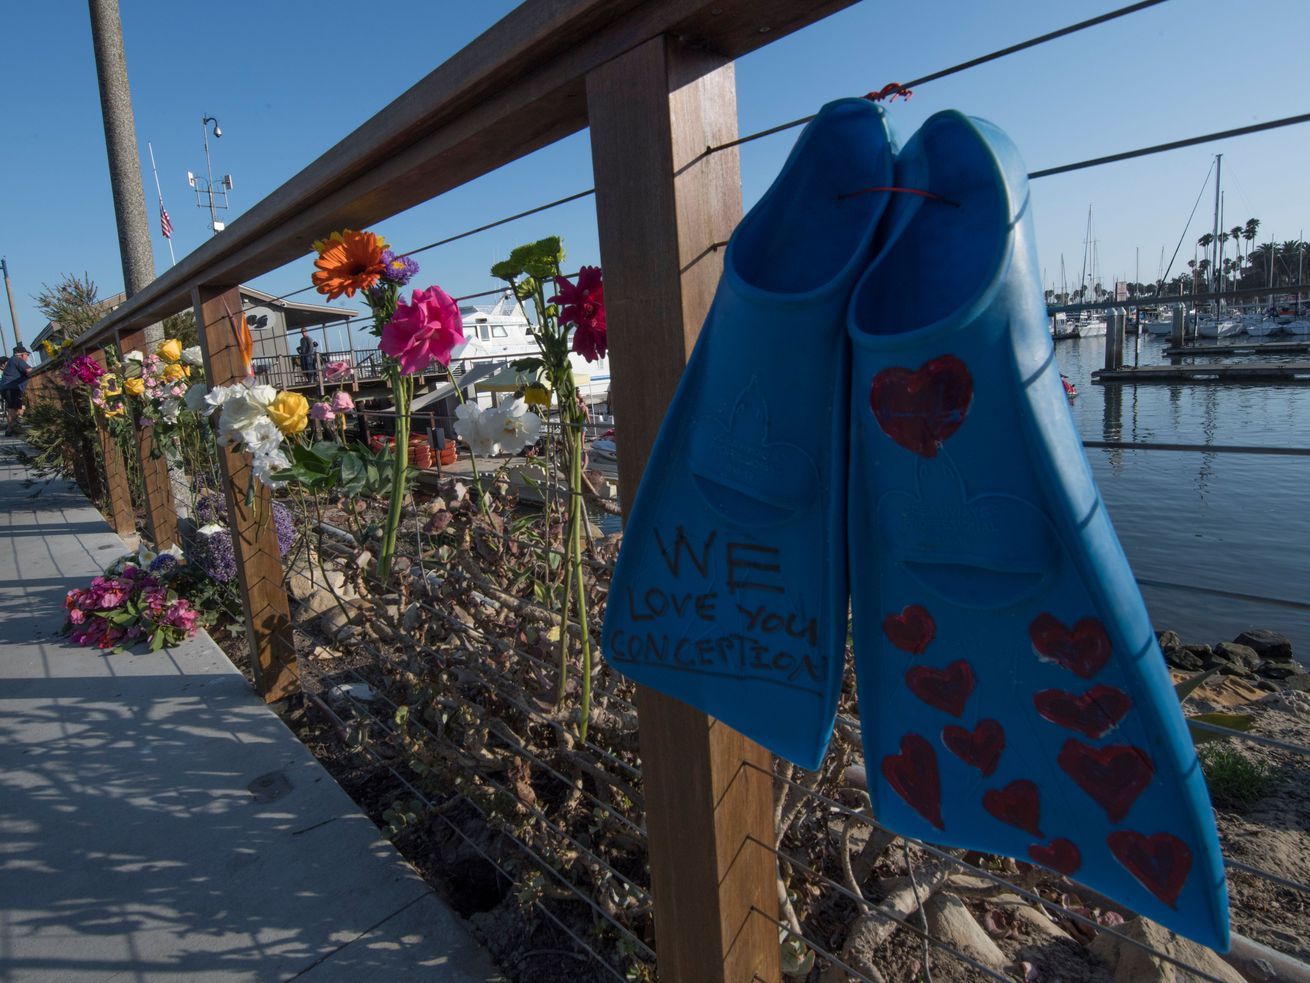 A memorial wall with a pair of diving fins and flowers.